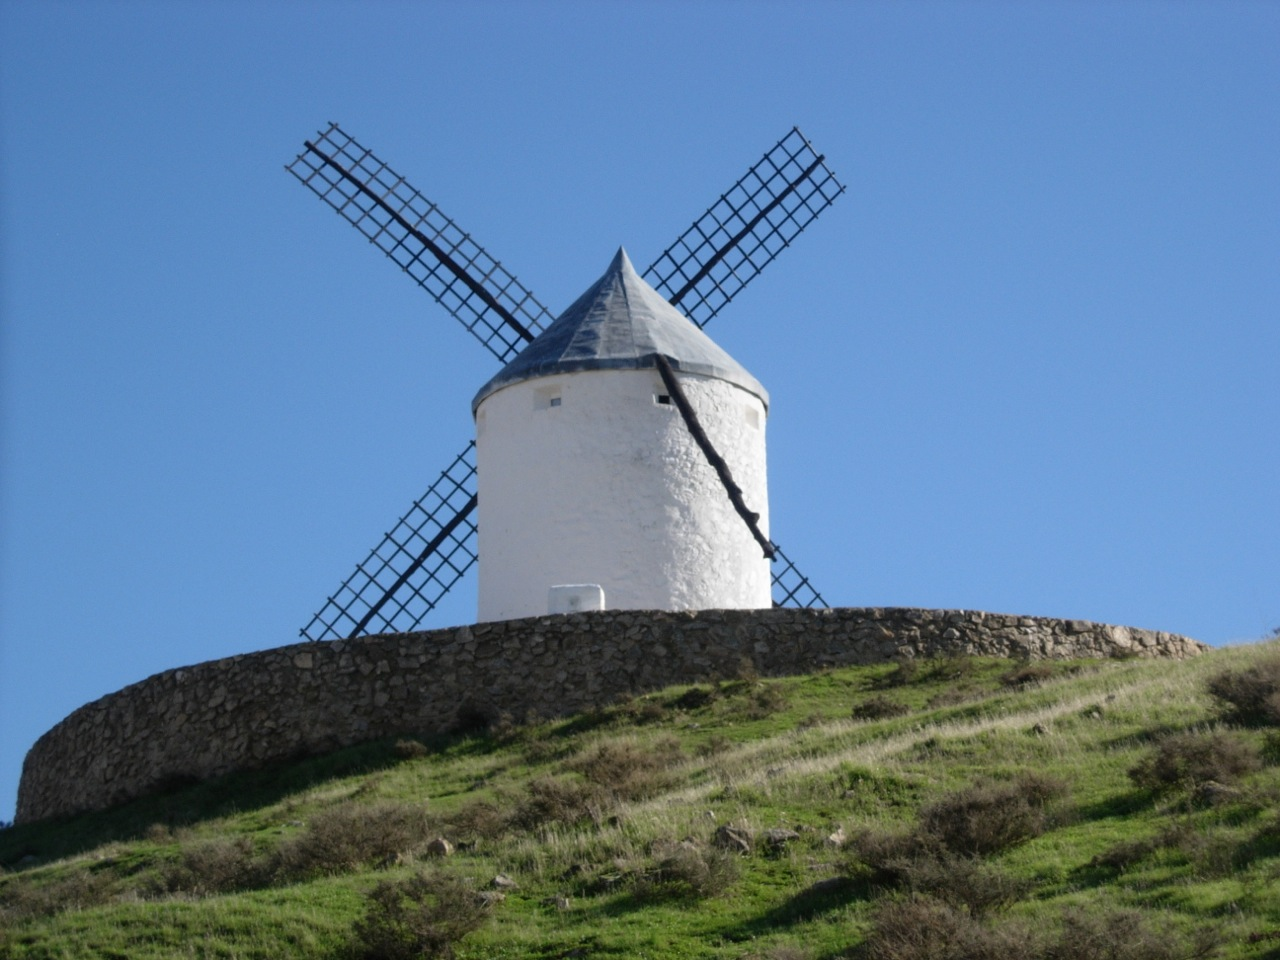 One of the windmills thought to have been an inspiration for Don Quixote. Photo by author.